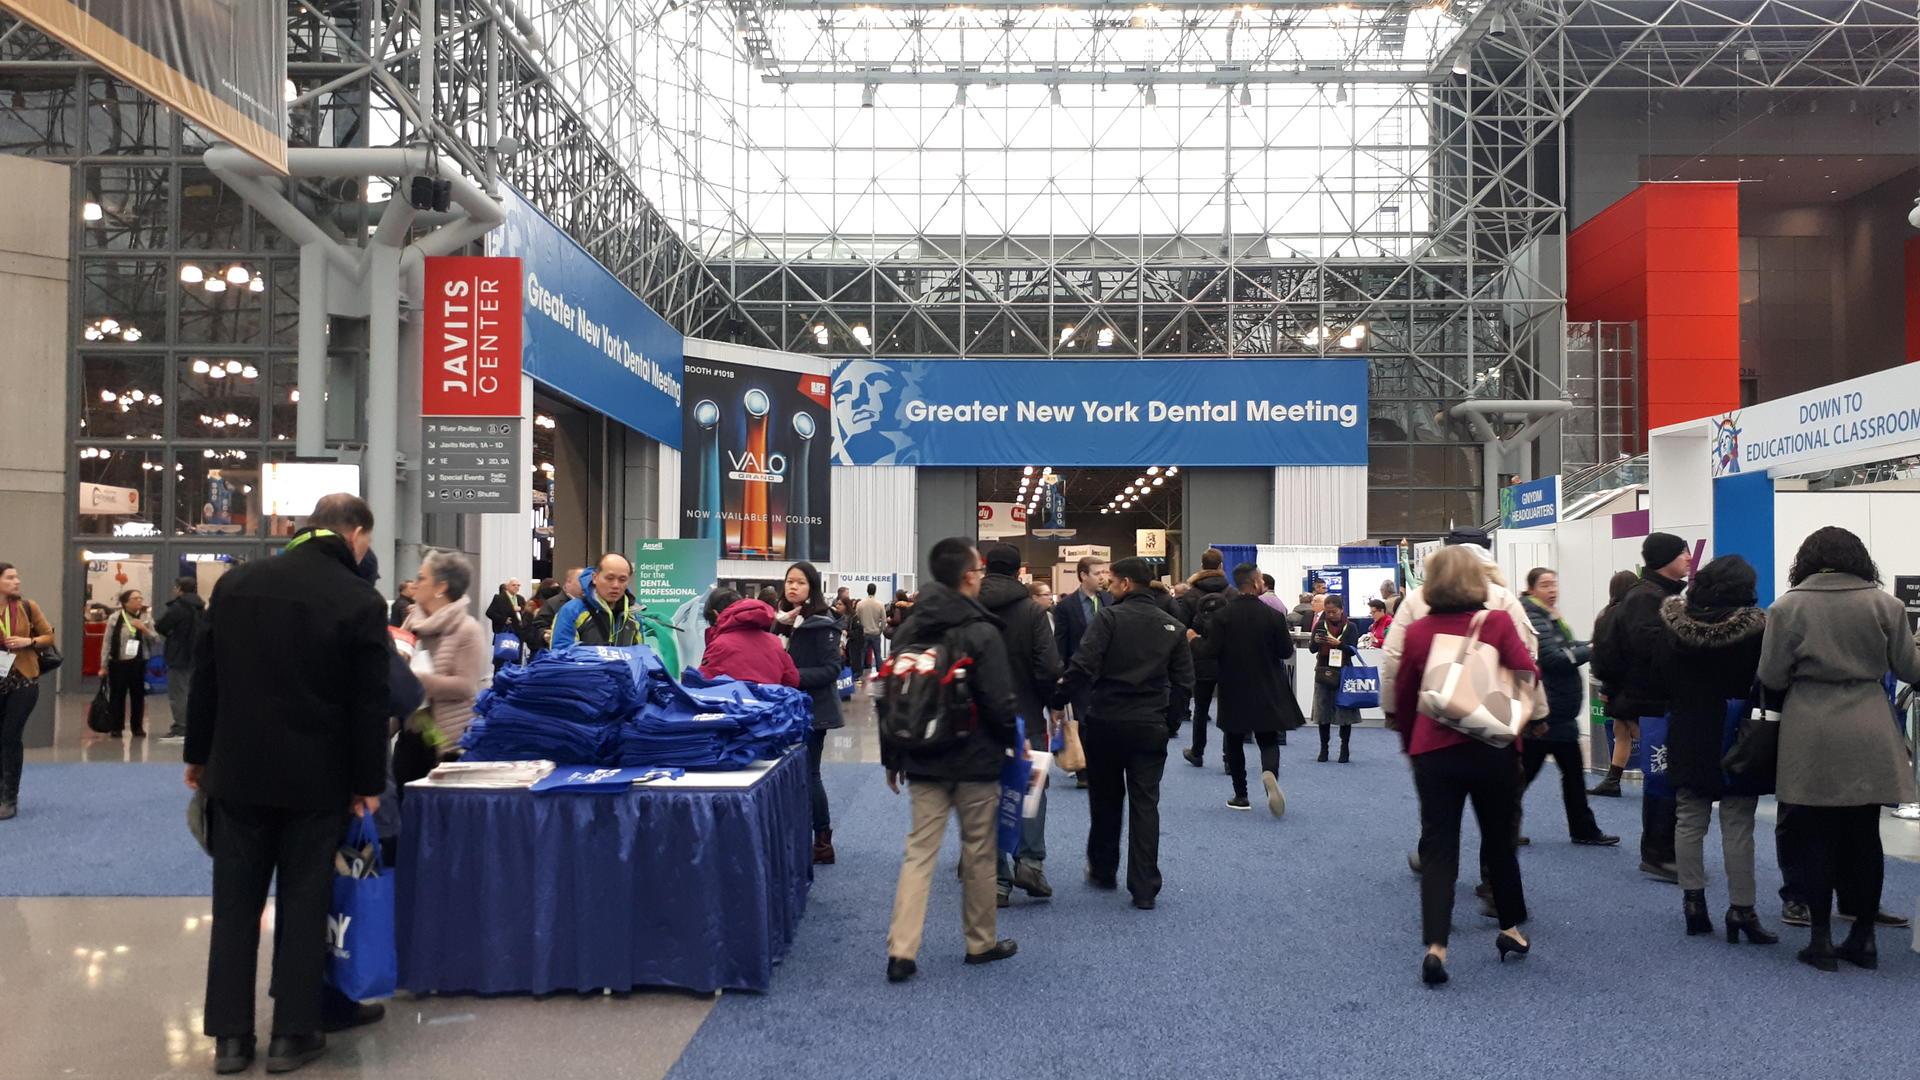 Exhibition Hall of GNYDM 2019